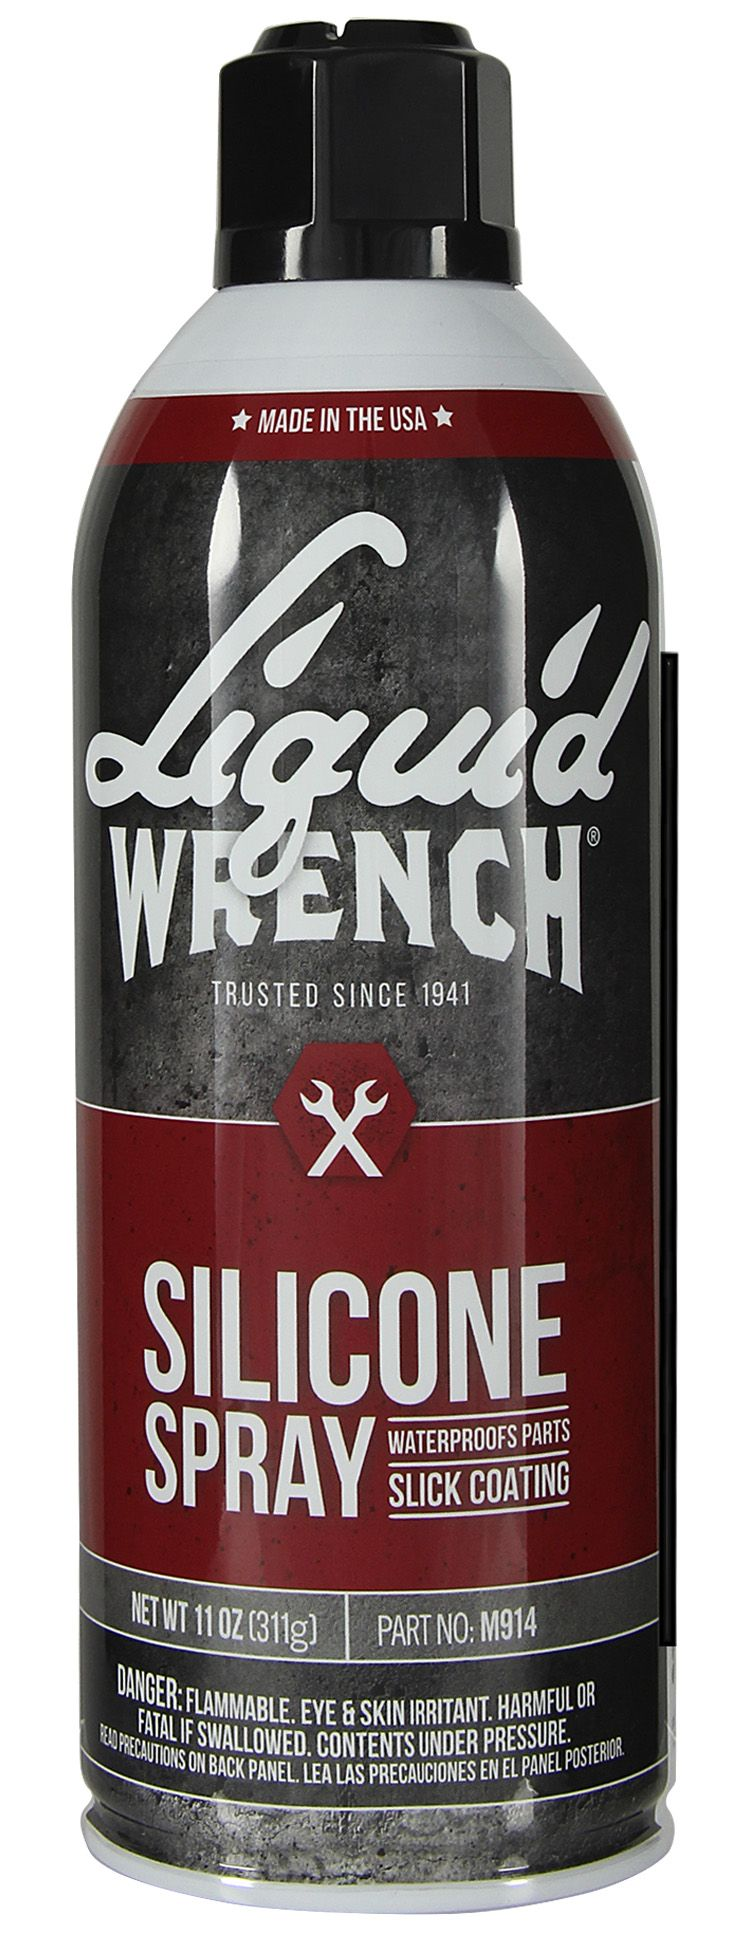 Liquid Wrench Silicone Spray Image